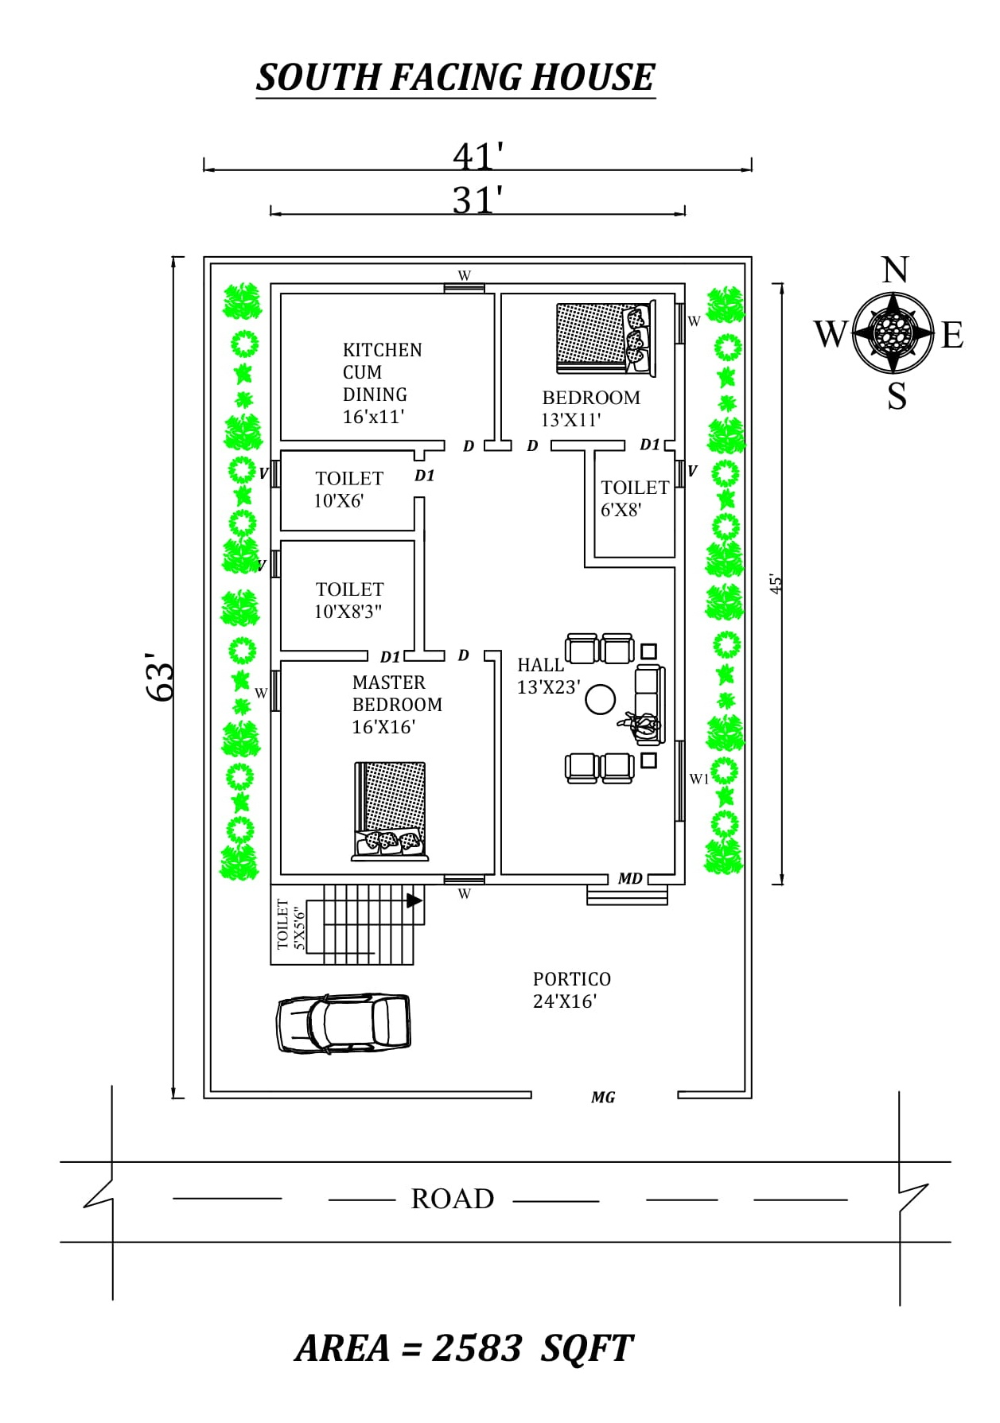 Autocad Drawing Of 41 X63 Awesome South Facing 2bhk House Plan As Per Vastu Shastra Dwg And Pdf File Details 2bhk House Plan South Facing House How To Plan